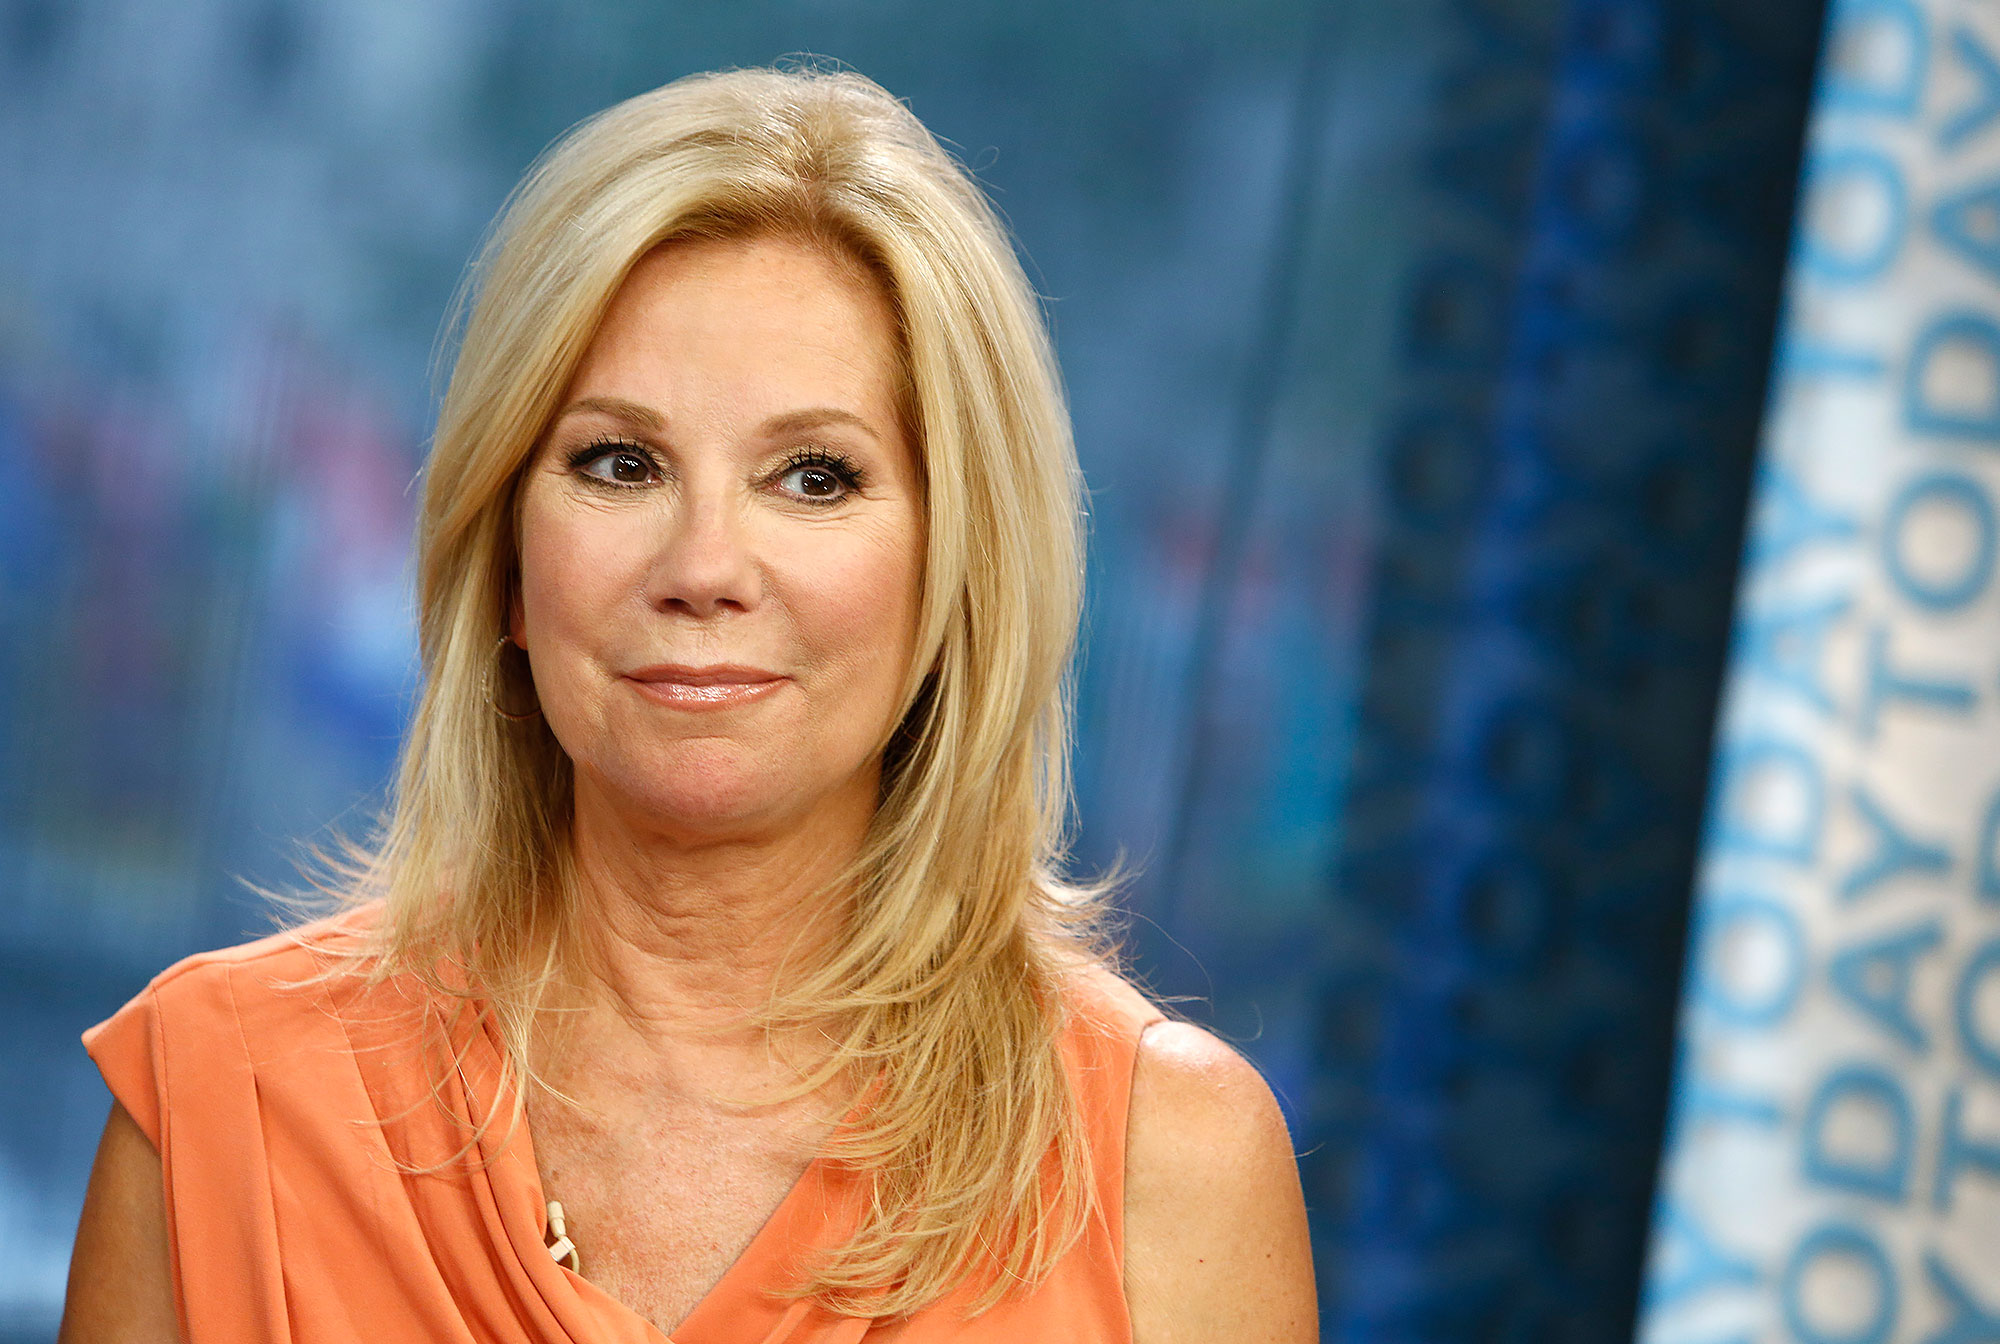 Kathie Lee Gifford Is Leaving the Today Show After Almost 11 Years